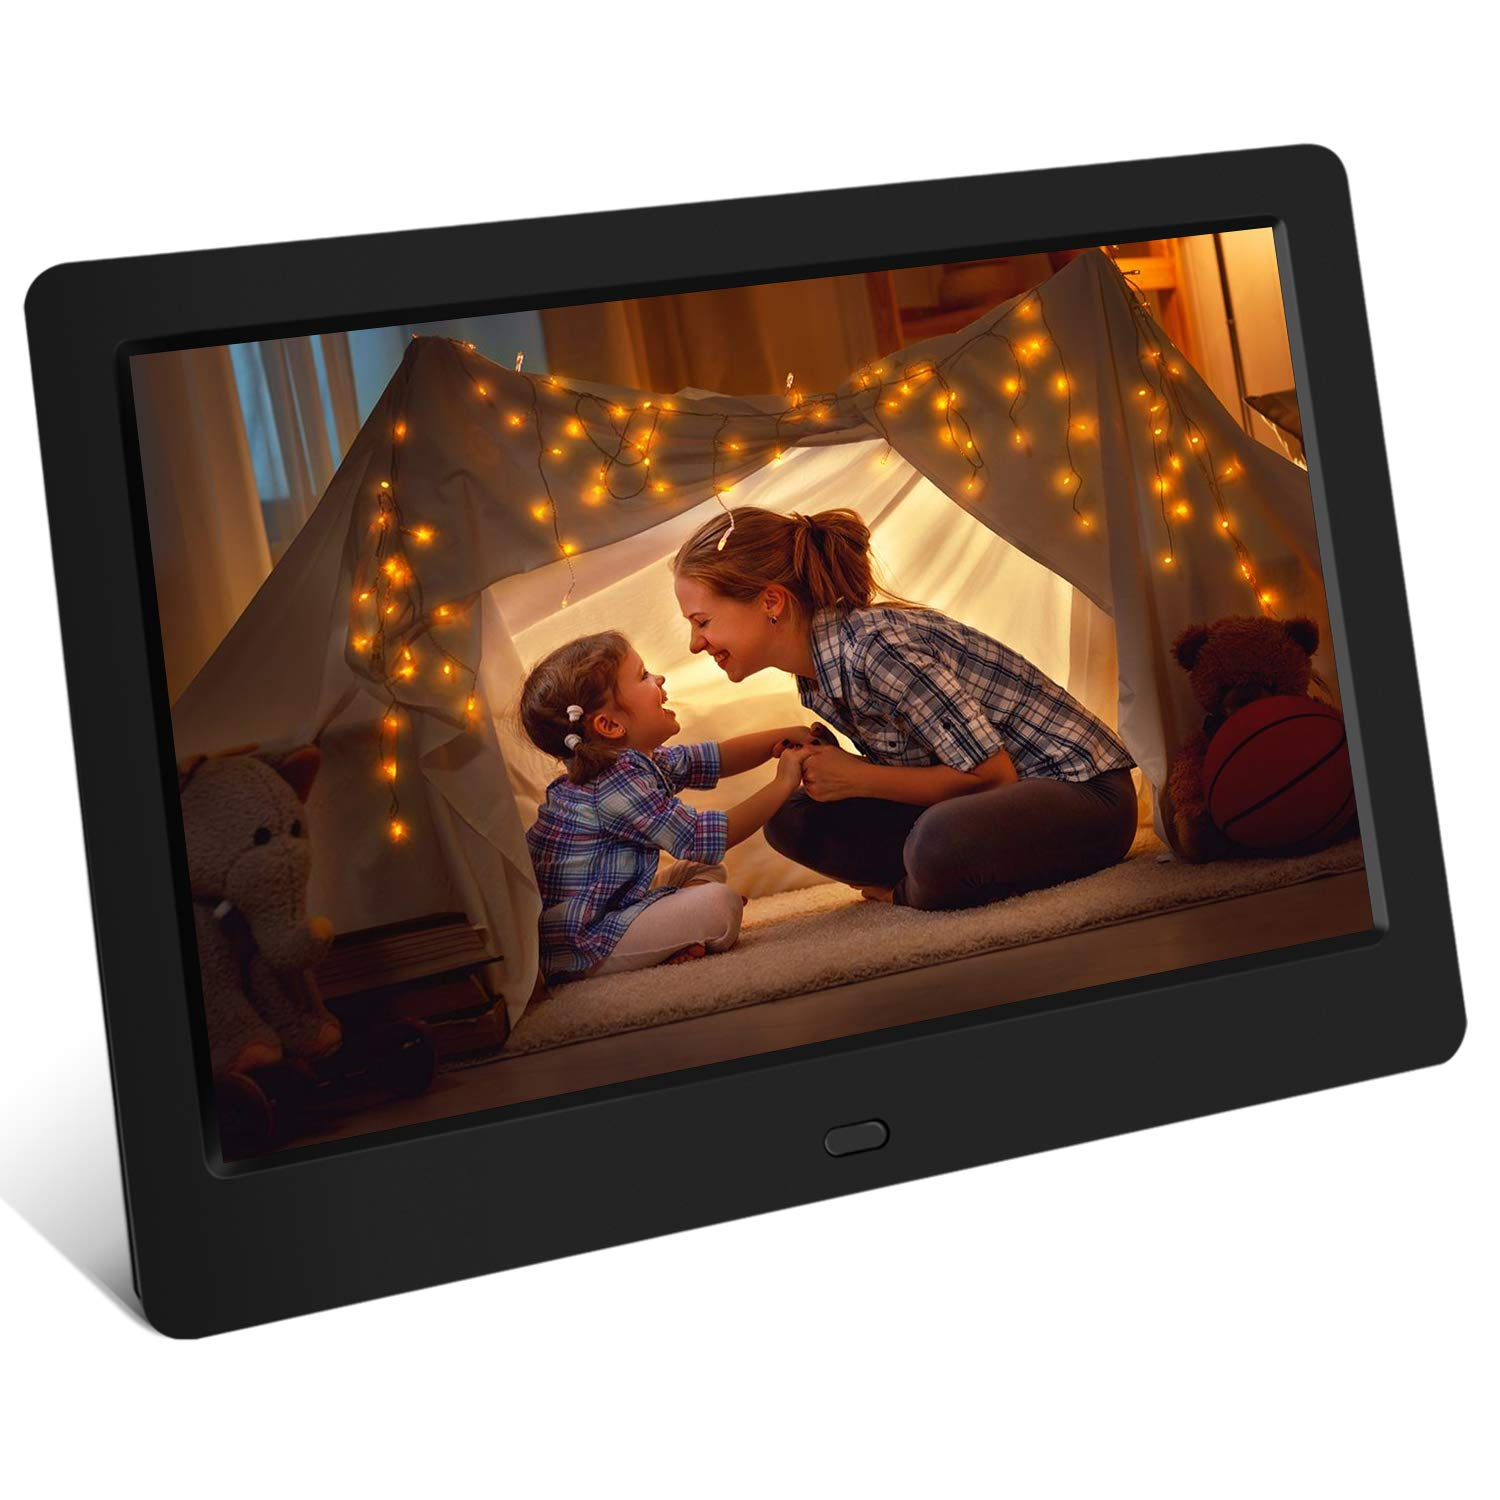 Tenswall Digital Photo Frame 7 Inch HD 1024x600, Digital Picture Frame Full IPS Display Photo/Music/Video/Calendar/Time, Auto On/Off Timer, Support USB Drives/SD Card,Remote Control by Tenswall